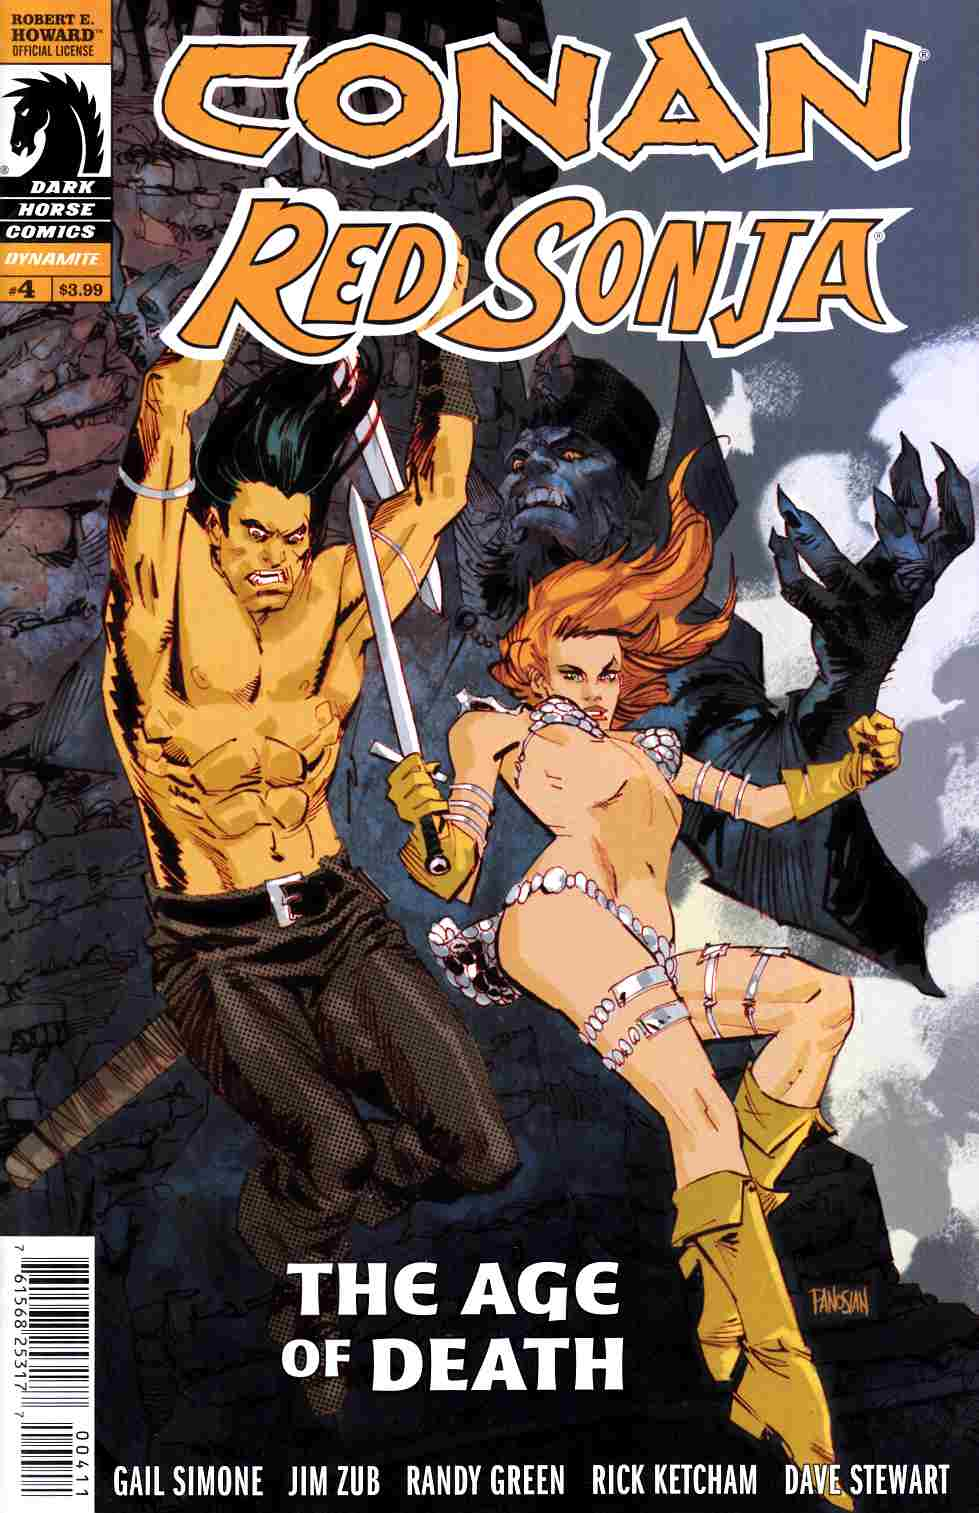 Conan Red Sonja #4 [Dark Horse Comic] THUMBNAIL